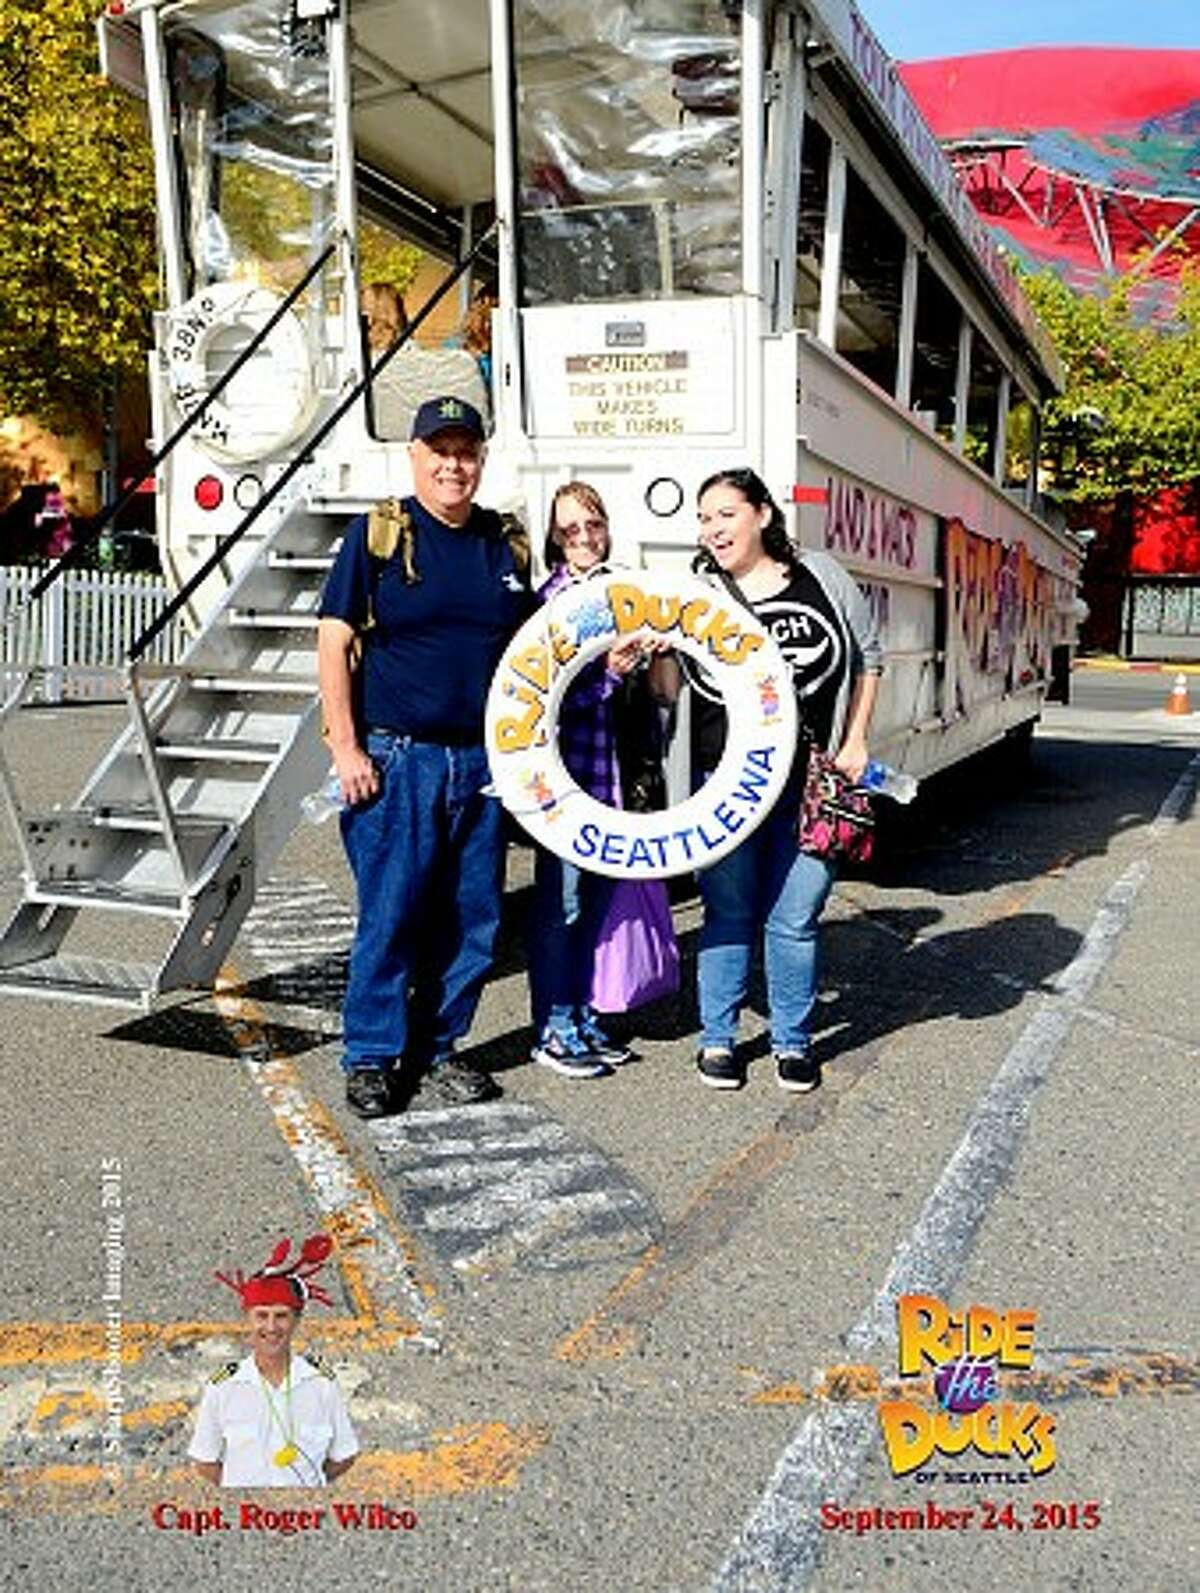 Seattle Ride the Ducks passengers Greg Moody, Patricia Moody and Katie Moody are pictured Thursday, minutes before the Duck boat they were riding on spun out of control and hit a charter bus on the Aurora Bridge. Four passengers on the bus were killed. Katie and Patricia Moody were in satisfactory condition Friday at Harborview Medical Center in Seattle, while Greg Moody had been released shortly after the crash. It wasn't immediately clear whether the